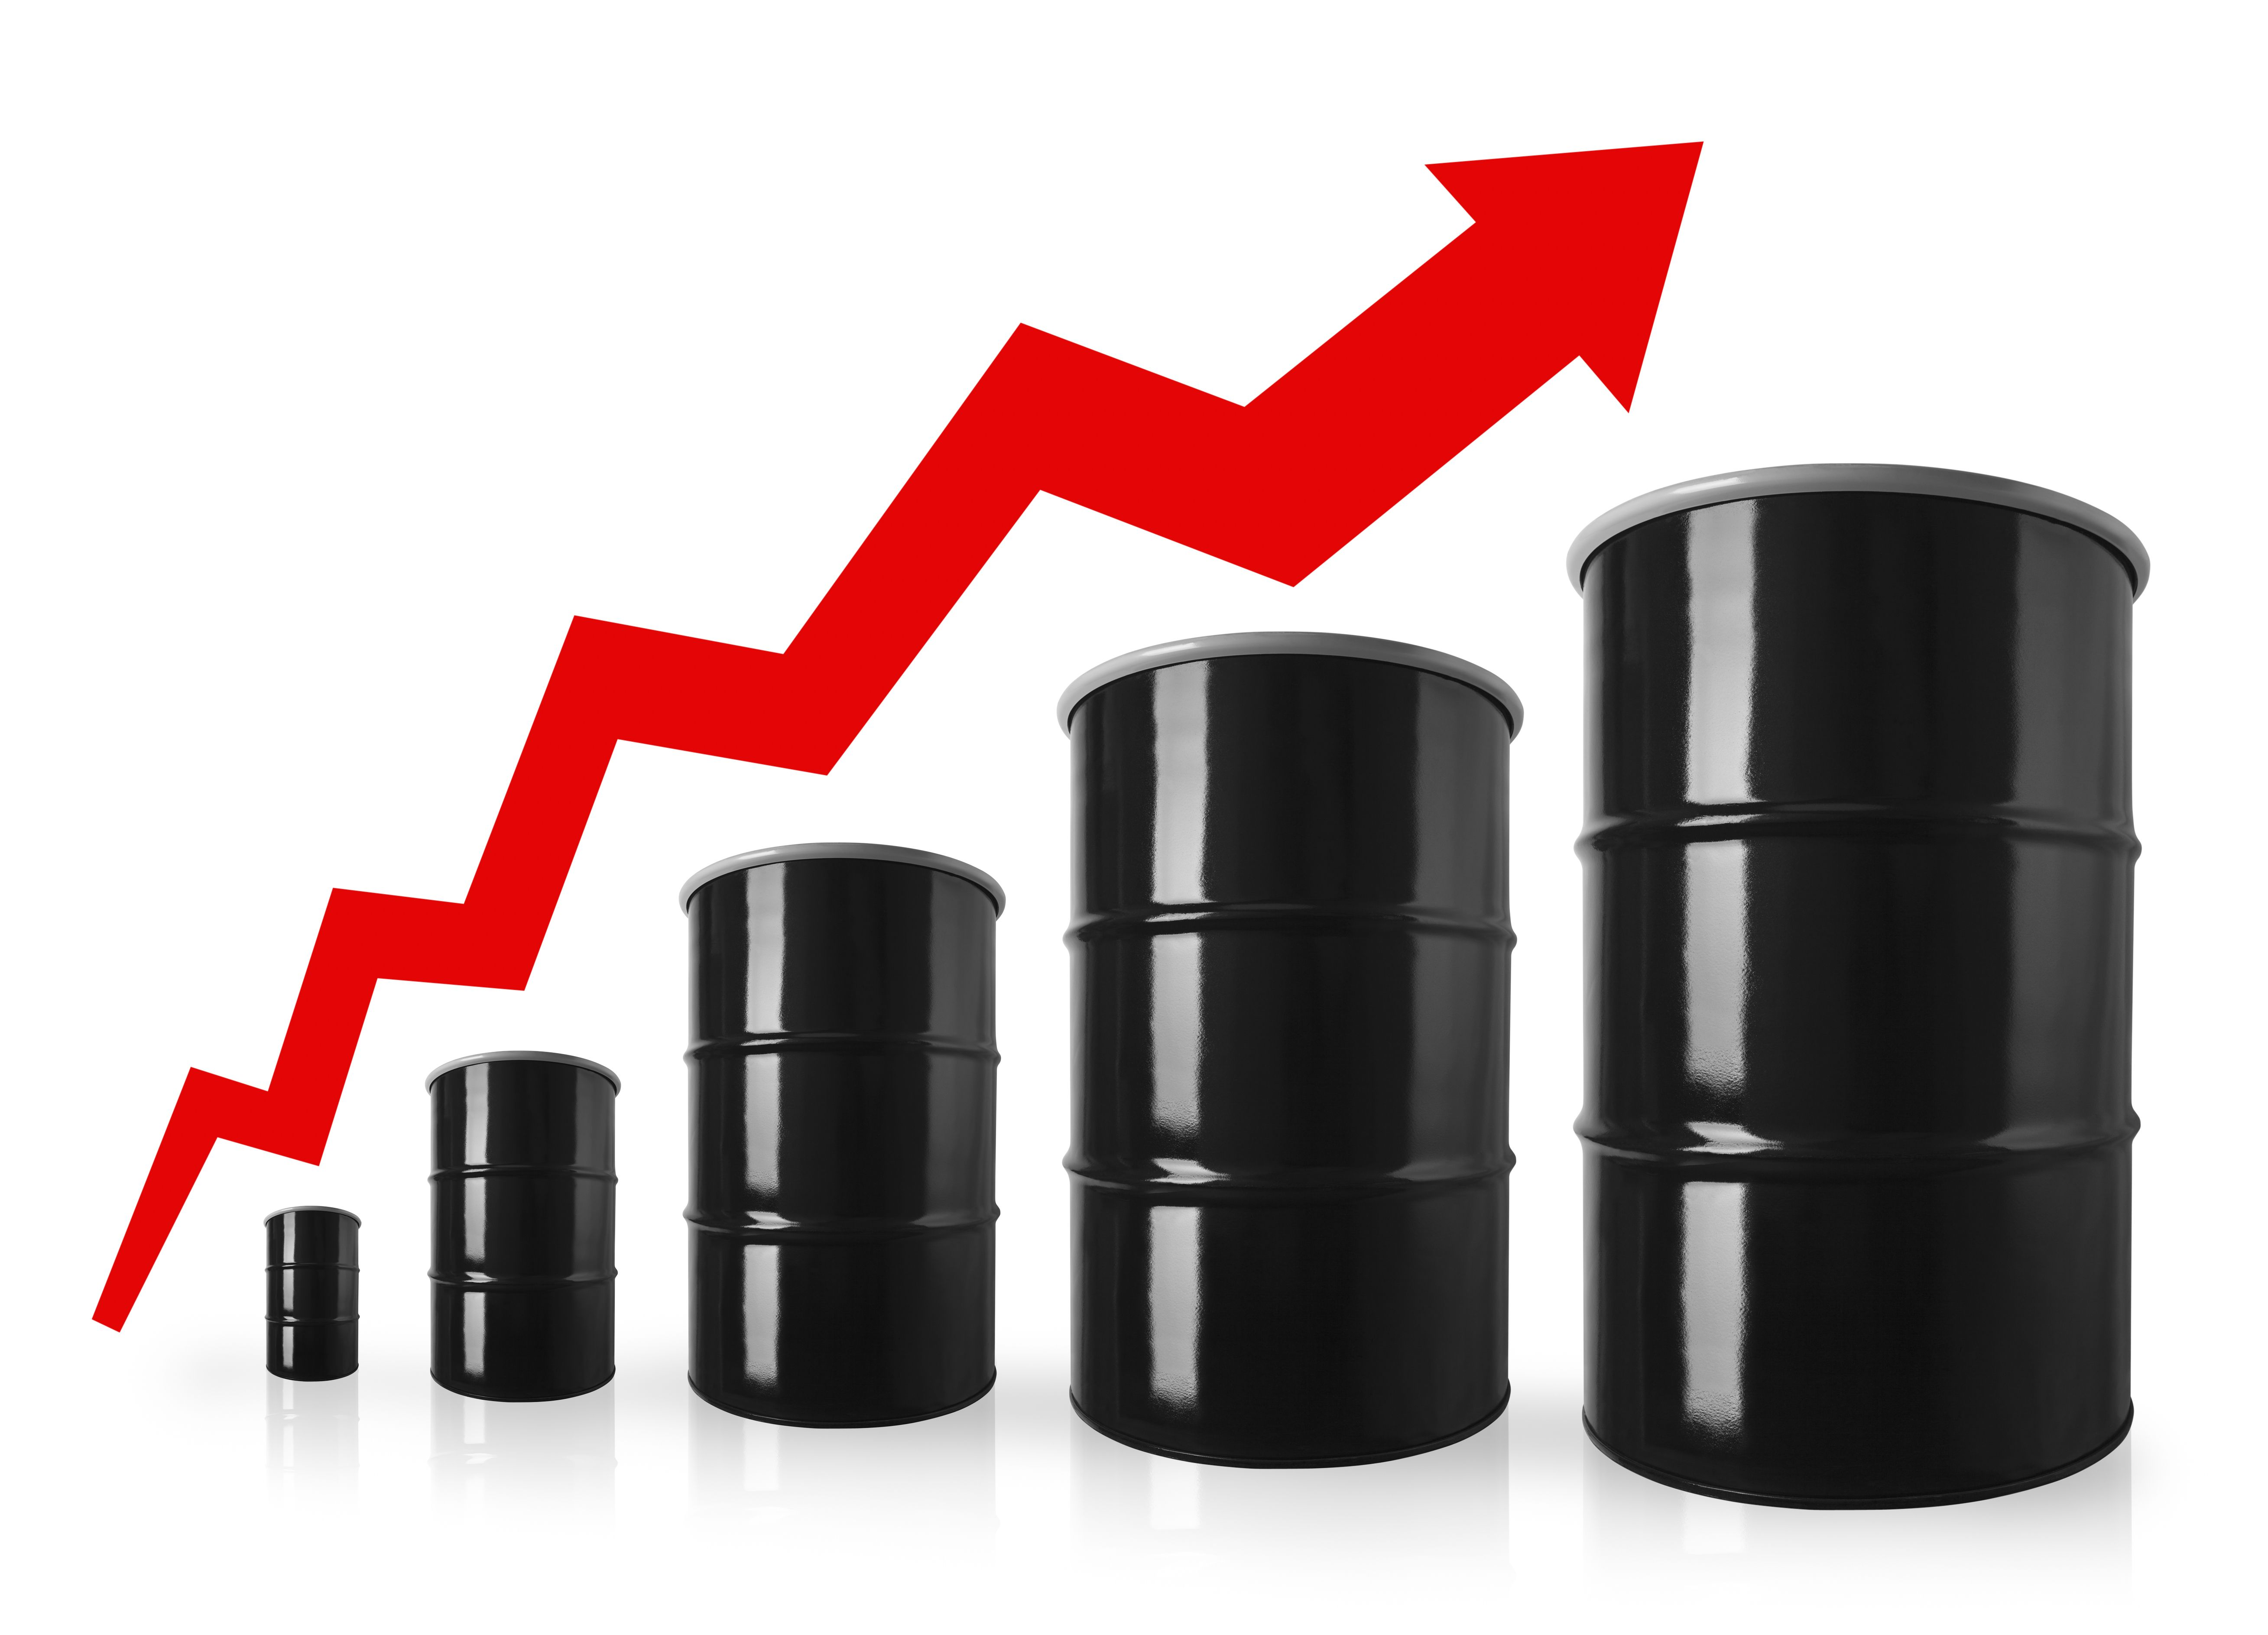 Is the oil price rise about to accelerate?